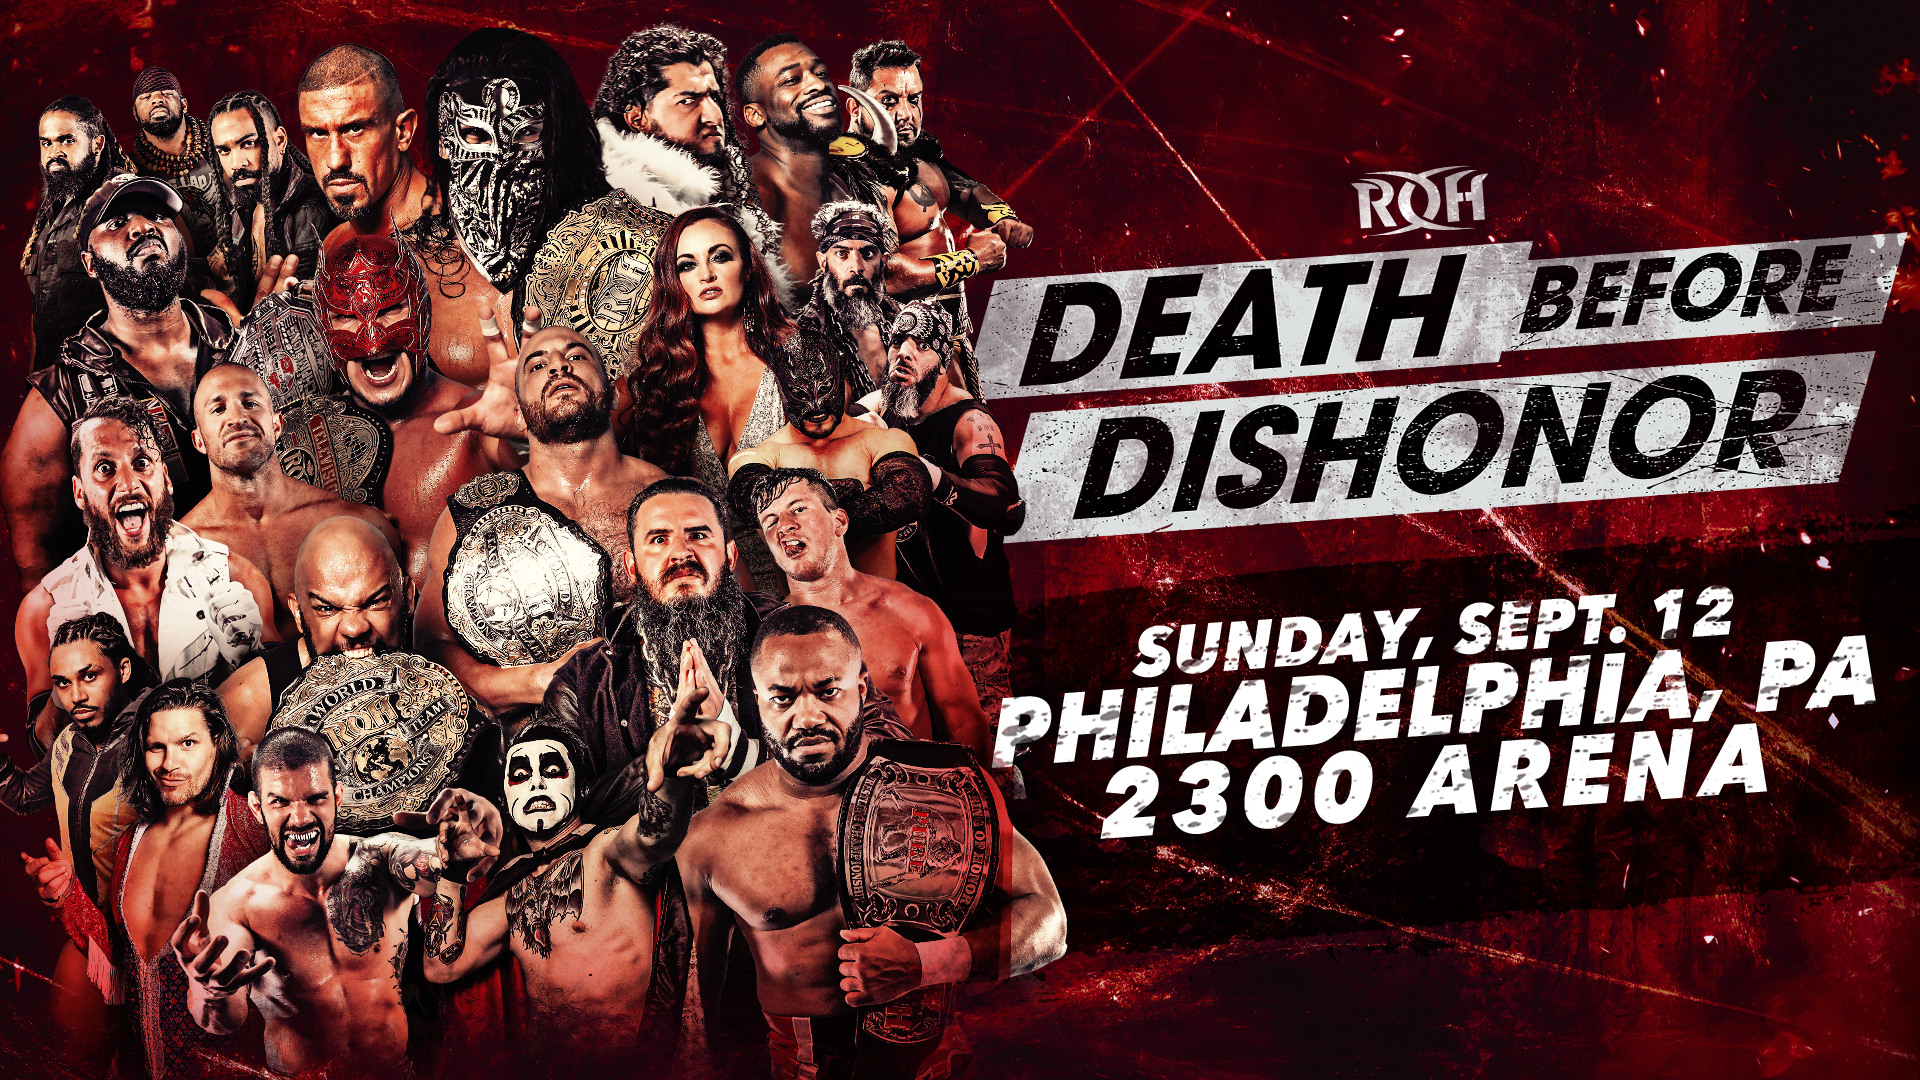 ROH Death Before Dishonor Results: World Title Four-Way Match